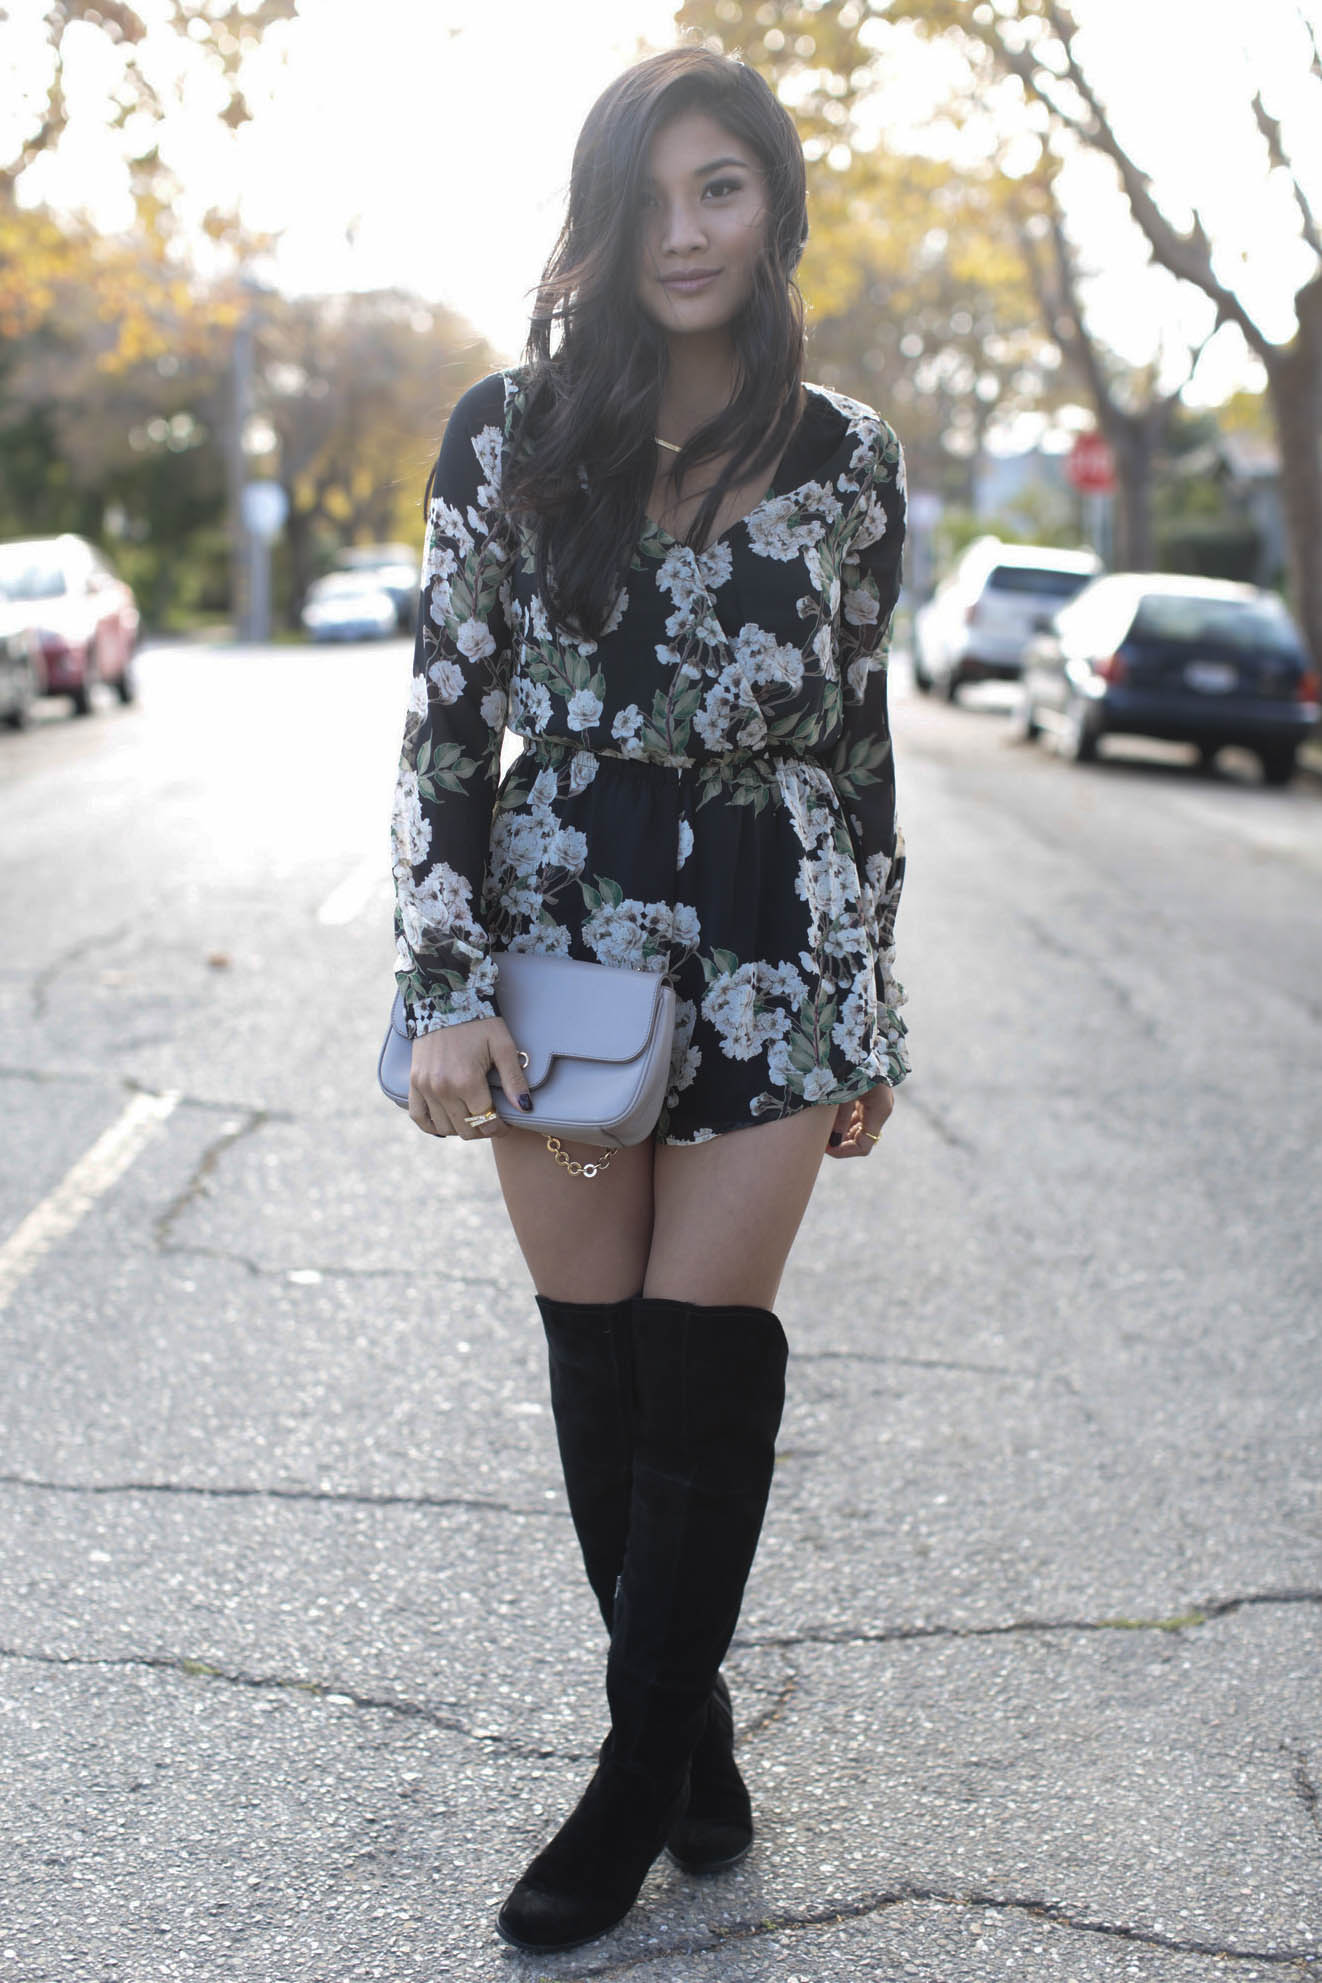 836fab471b8c OOTD  How to wear knee high boots with a romper - Colors of Chic